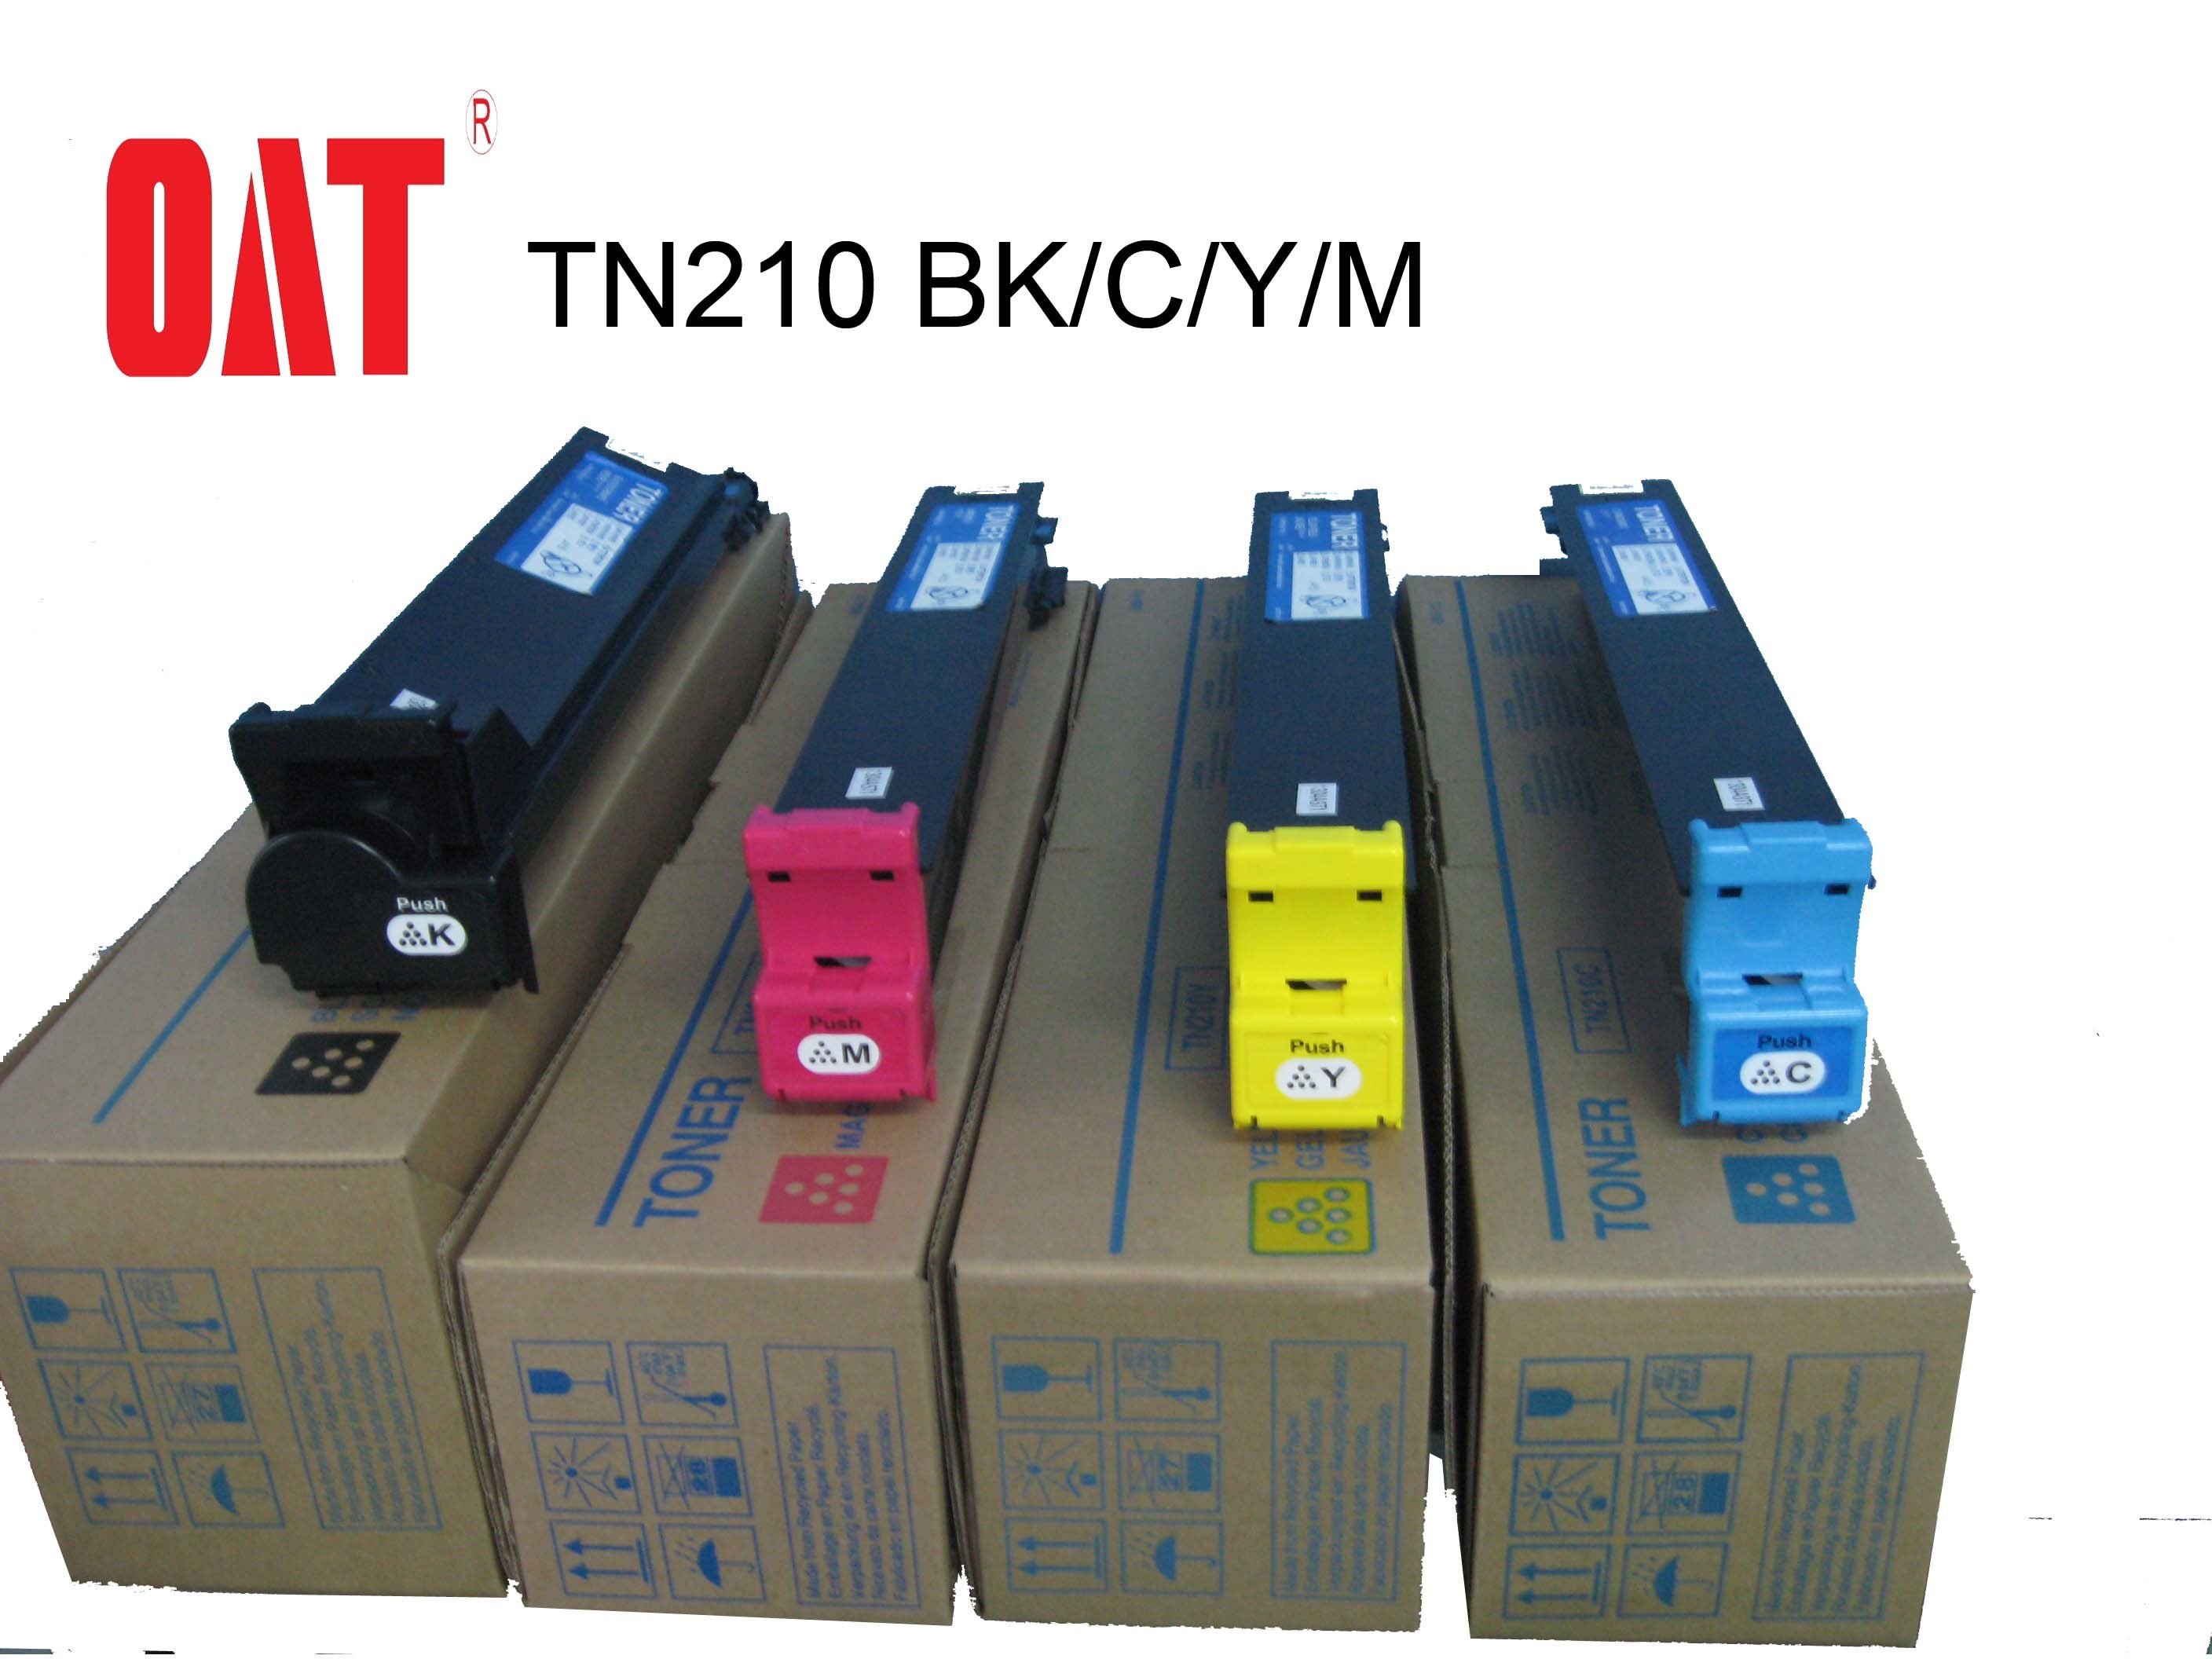 Copier Toner Tn210 Color Toner Cartridge for Konica Minolta C250/250p/252